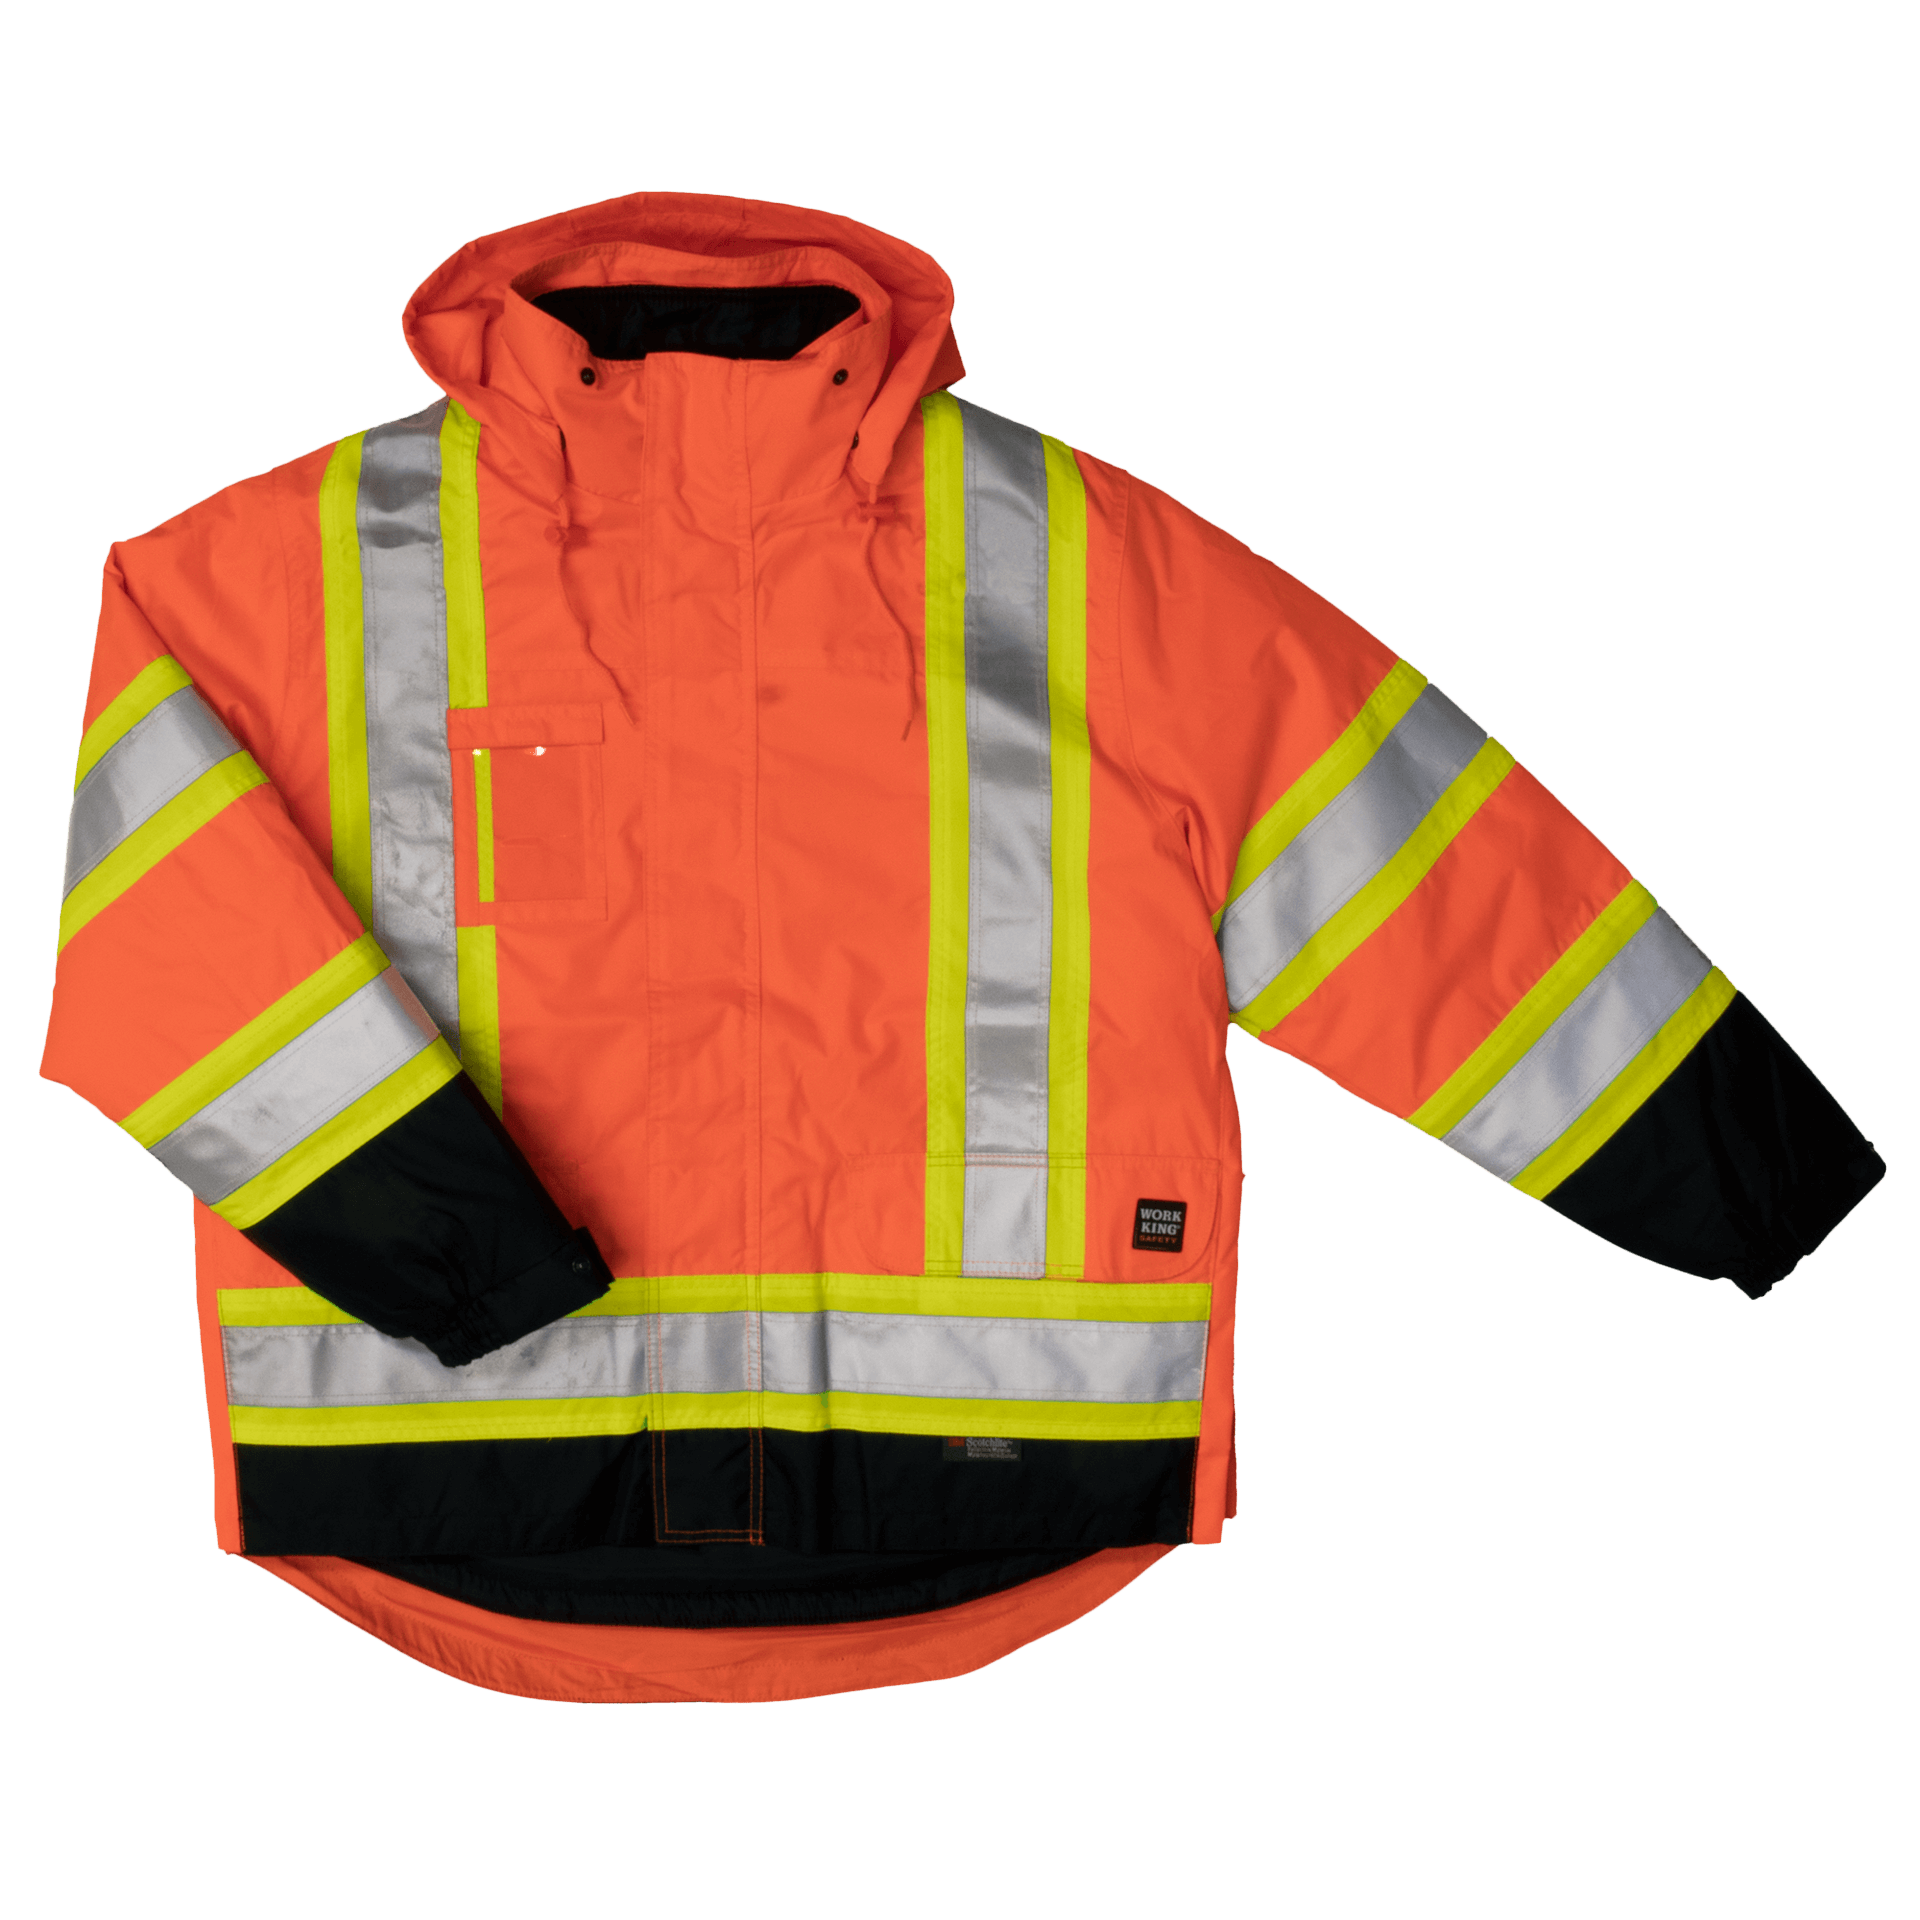 S426-FLOR-F-Work-King-Safety-by-Tough-Duck-Mens-5-in-1-Safety-Jacket-Fluorescent-Orange-Front